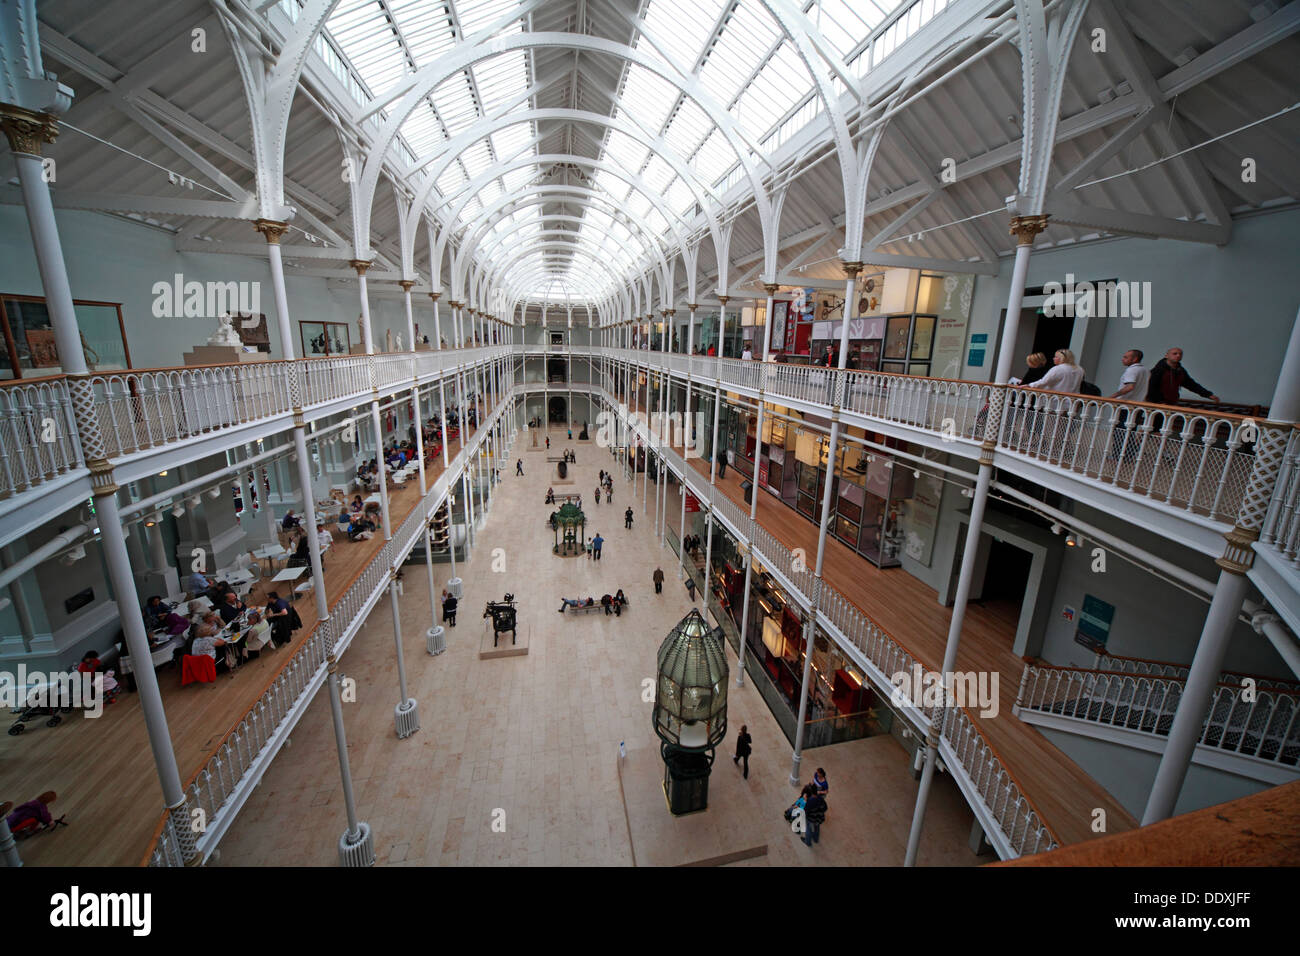 National Museum of Scotland interior, Chambers St Edinburgh city, Scotland UK EH1 1JF - Stock Image